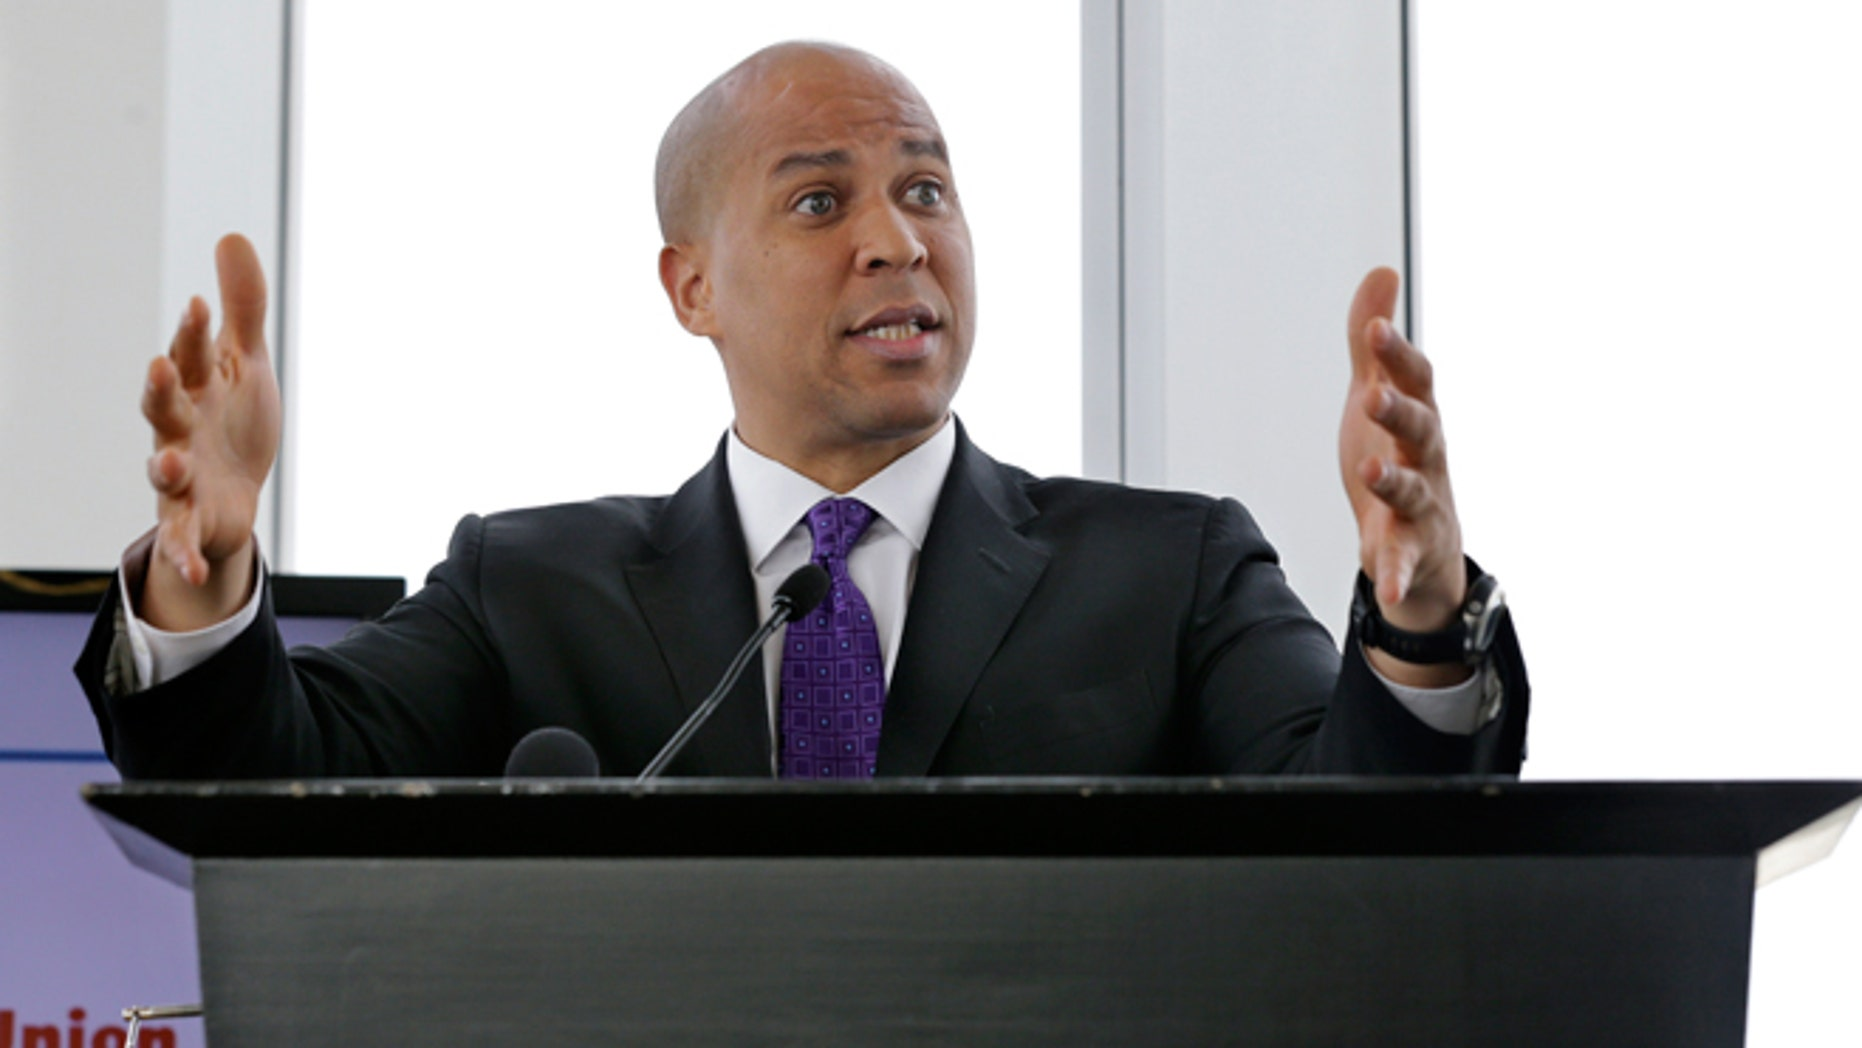 Oct. 20, 2014: United States Sen. Cory Booker addresses a gathering at Kean University in Union, N.J. Booker will face Republican Senate candidate Jeff Bell in the November election.